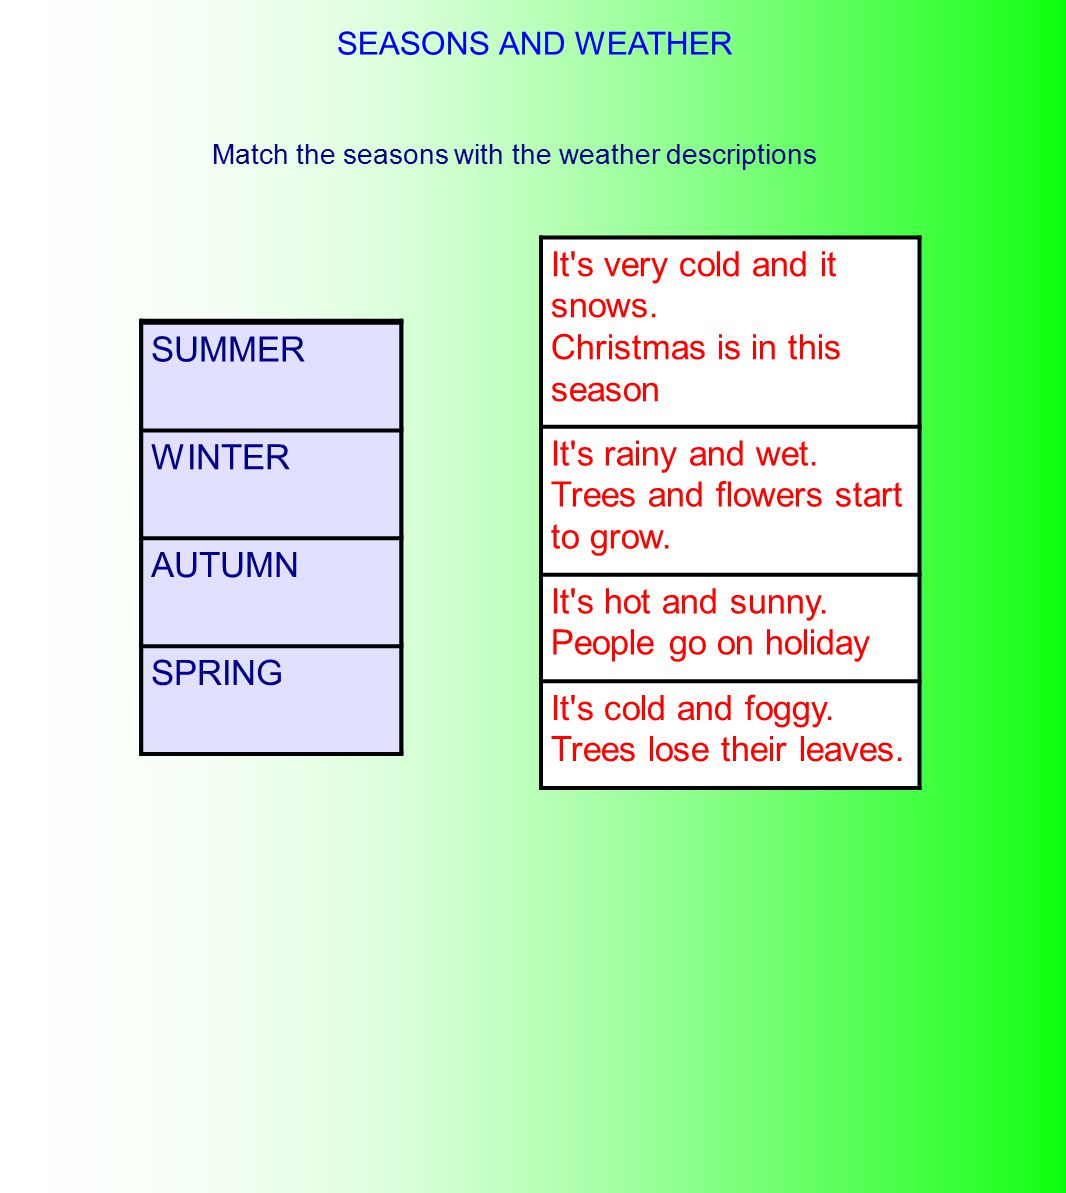 Match the seasons with the weather descriptions